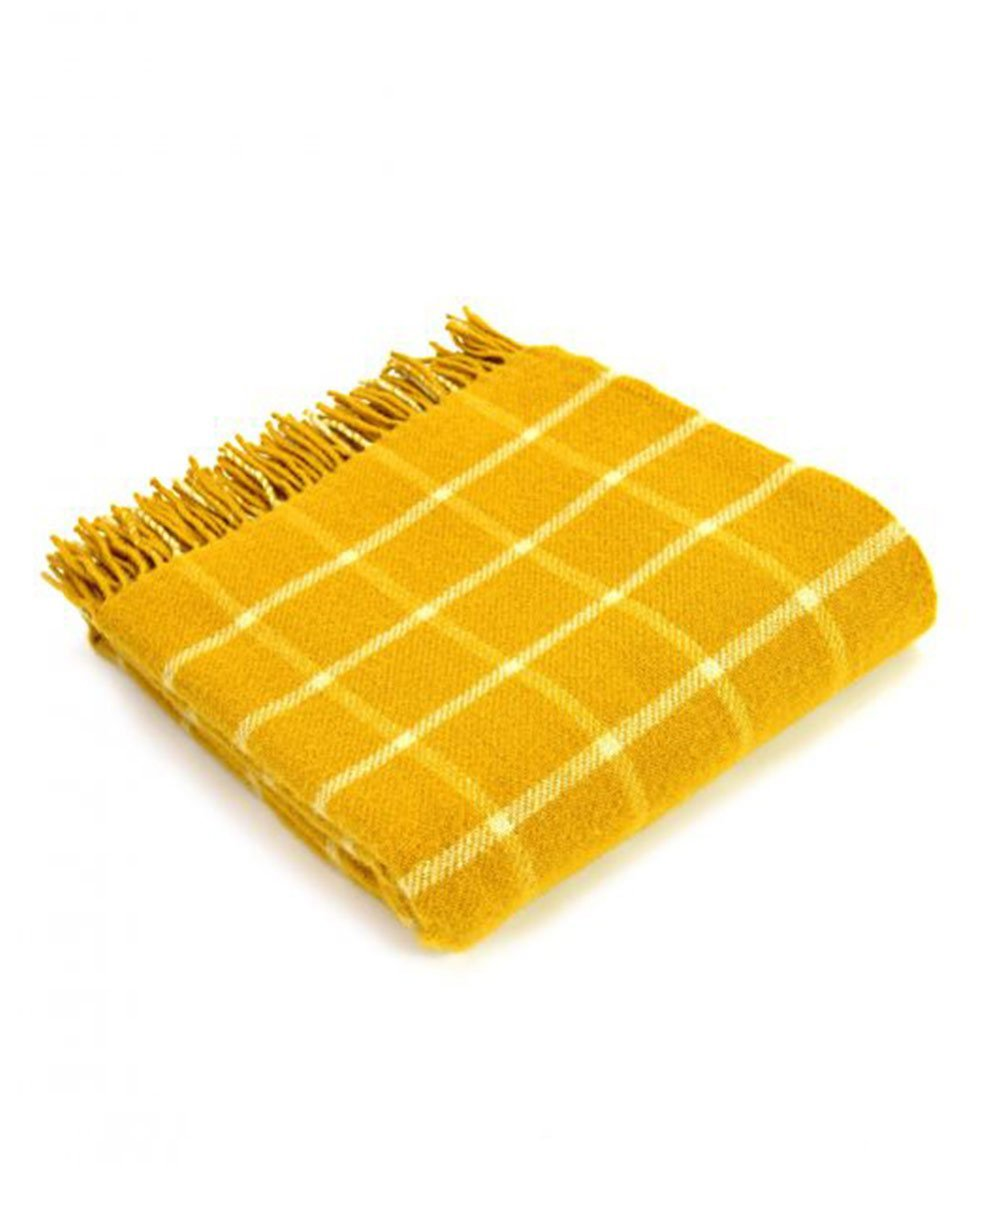 Goodwood Estate Wool Yellow Chequerboard Throw Blanket